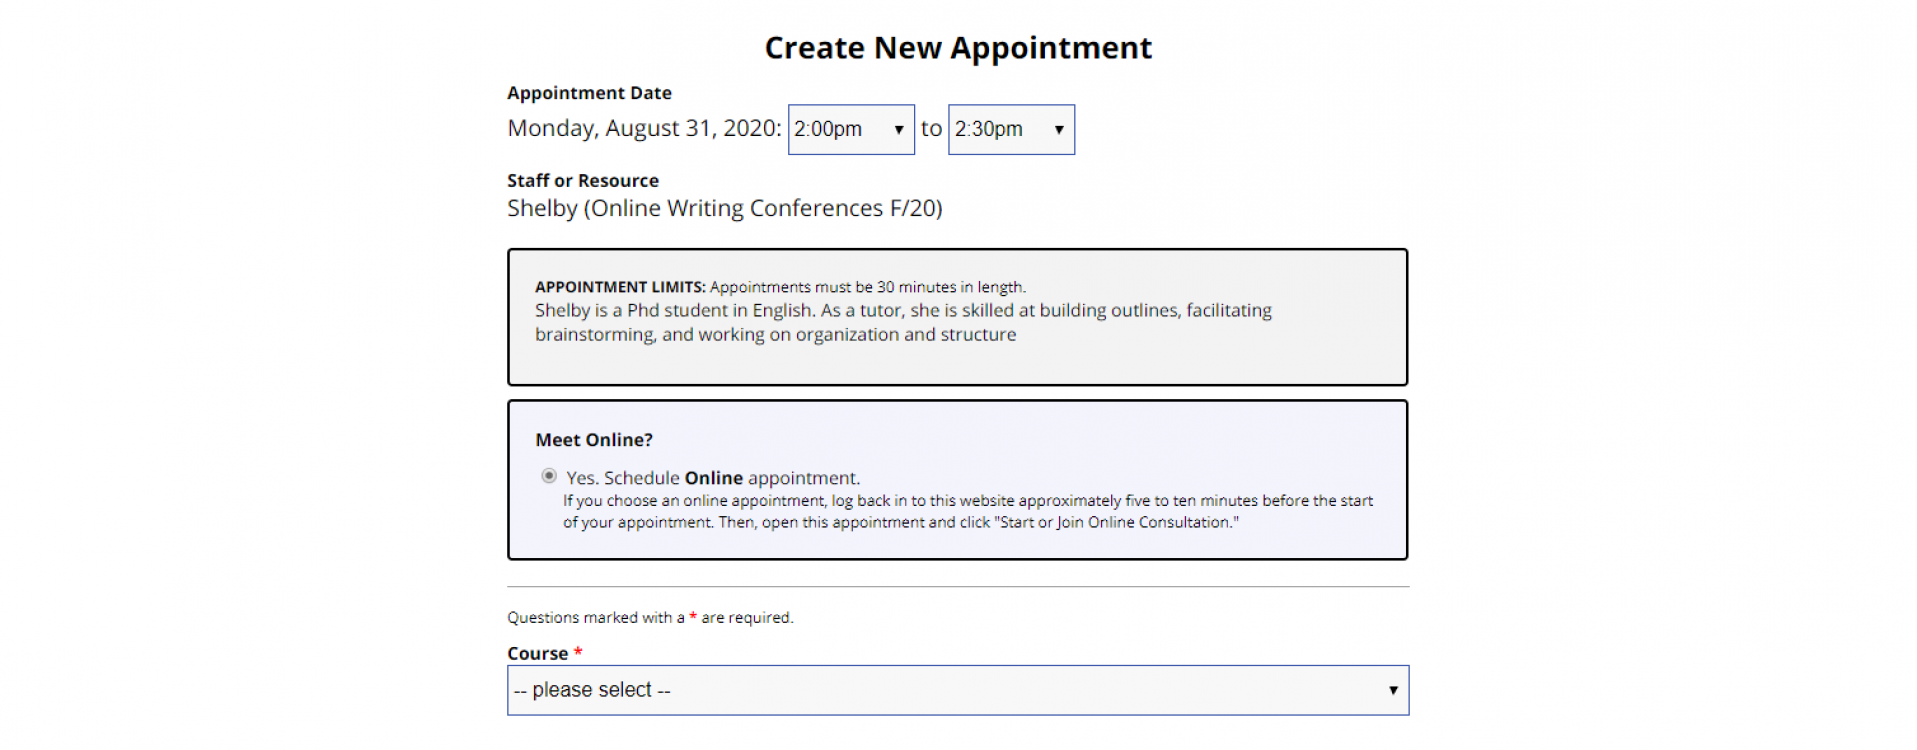 An image of an appointment form for the Online Writing Conferences Schedule.